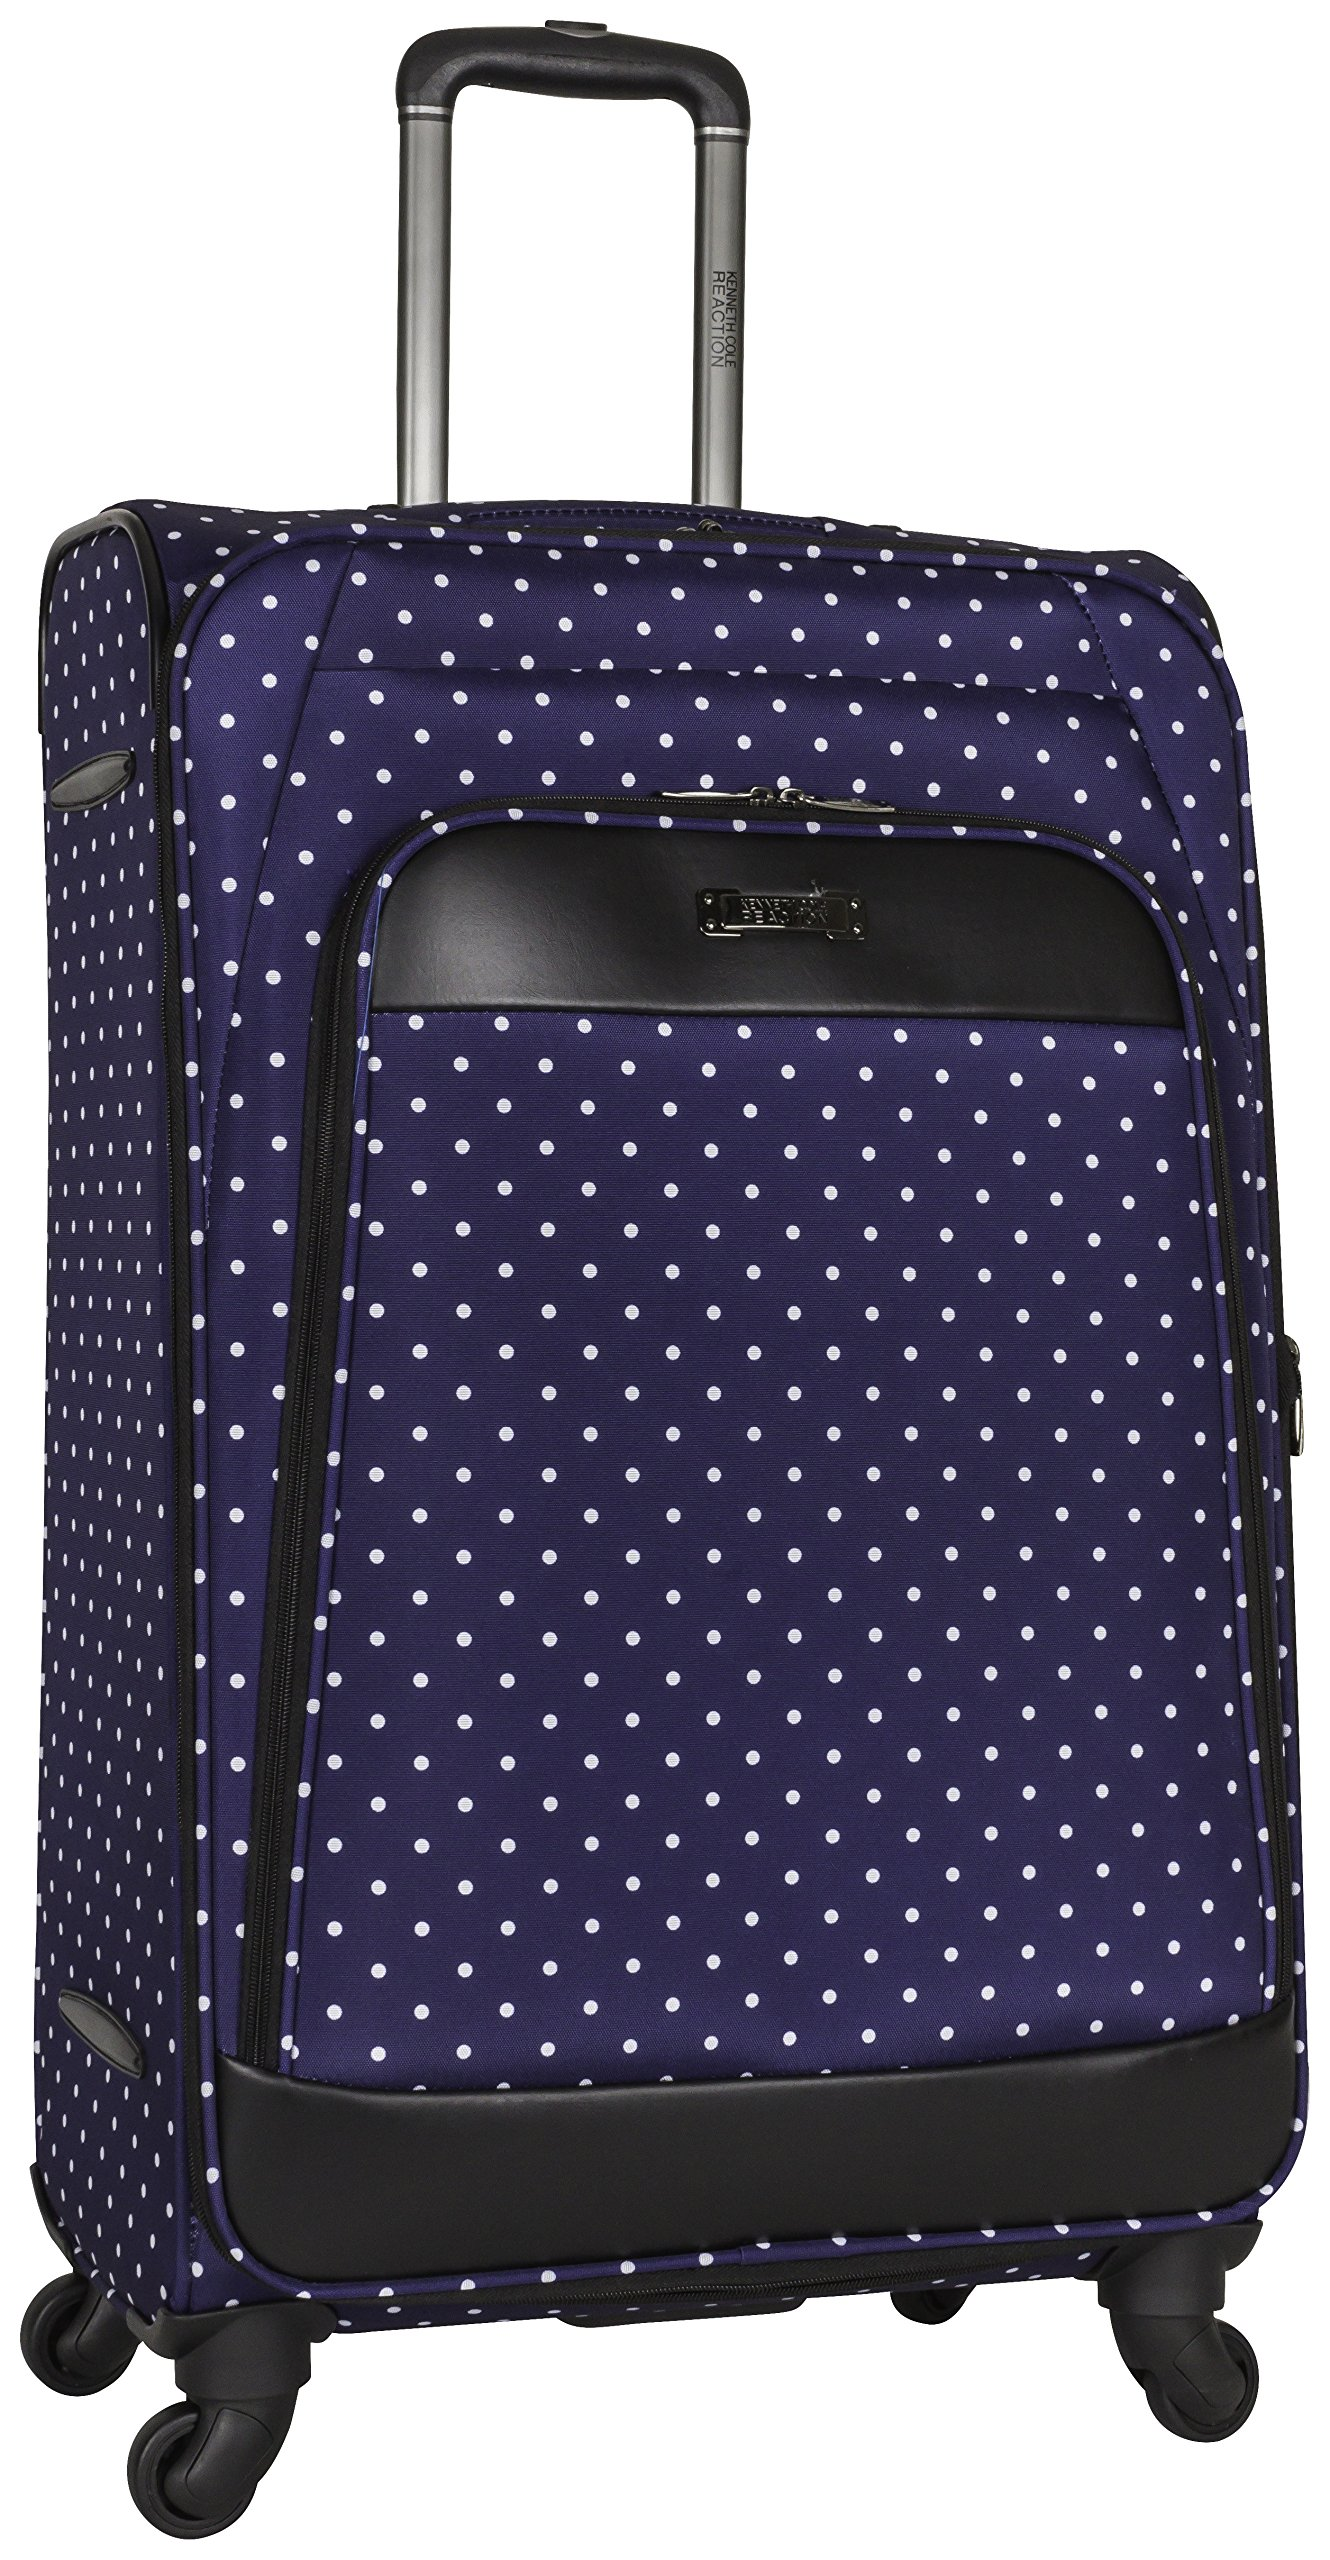 Kenneth Cole Reaction Dot Matrix 28'' Lightweight Expandable 4-Wheel Spinner Checked Luggage, Navy